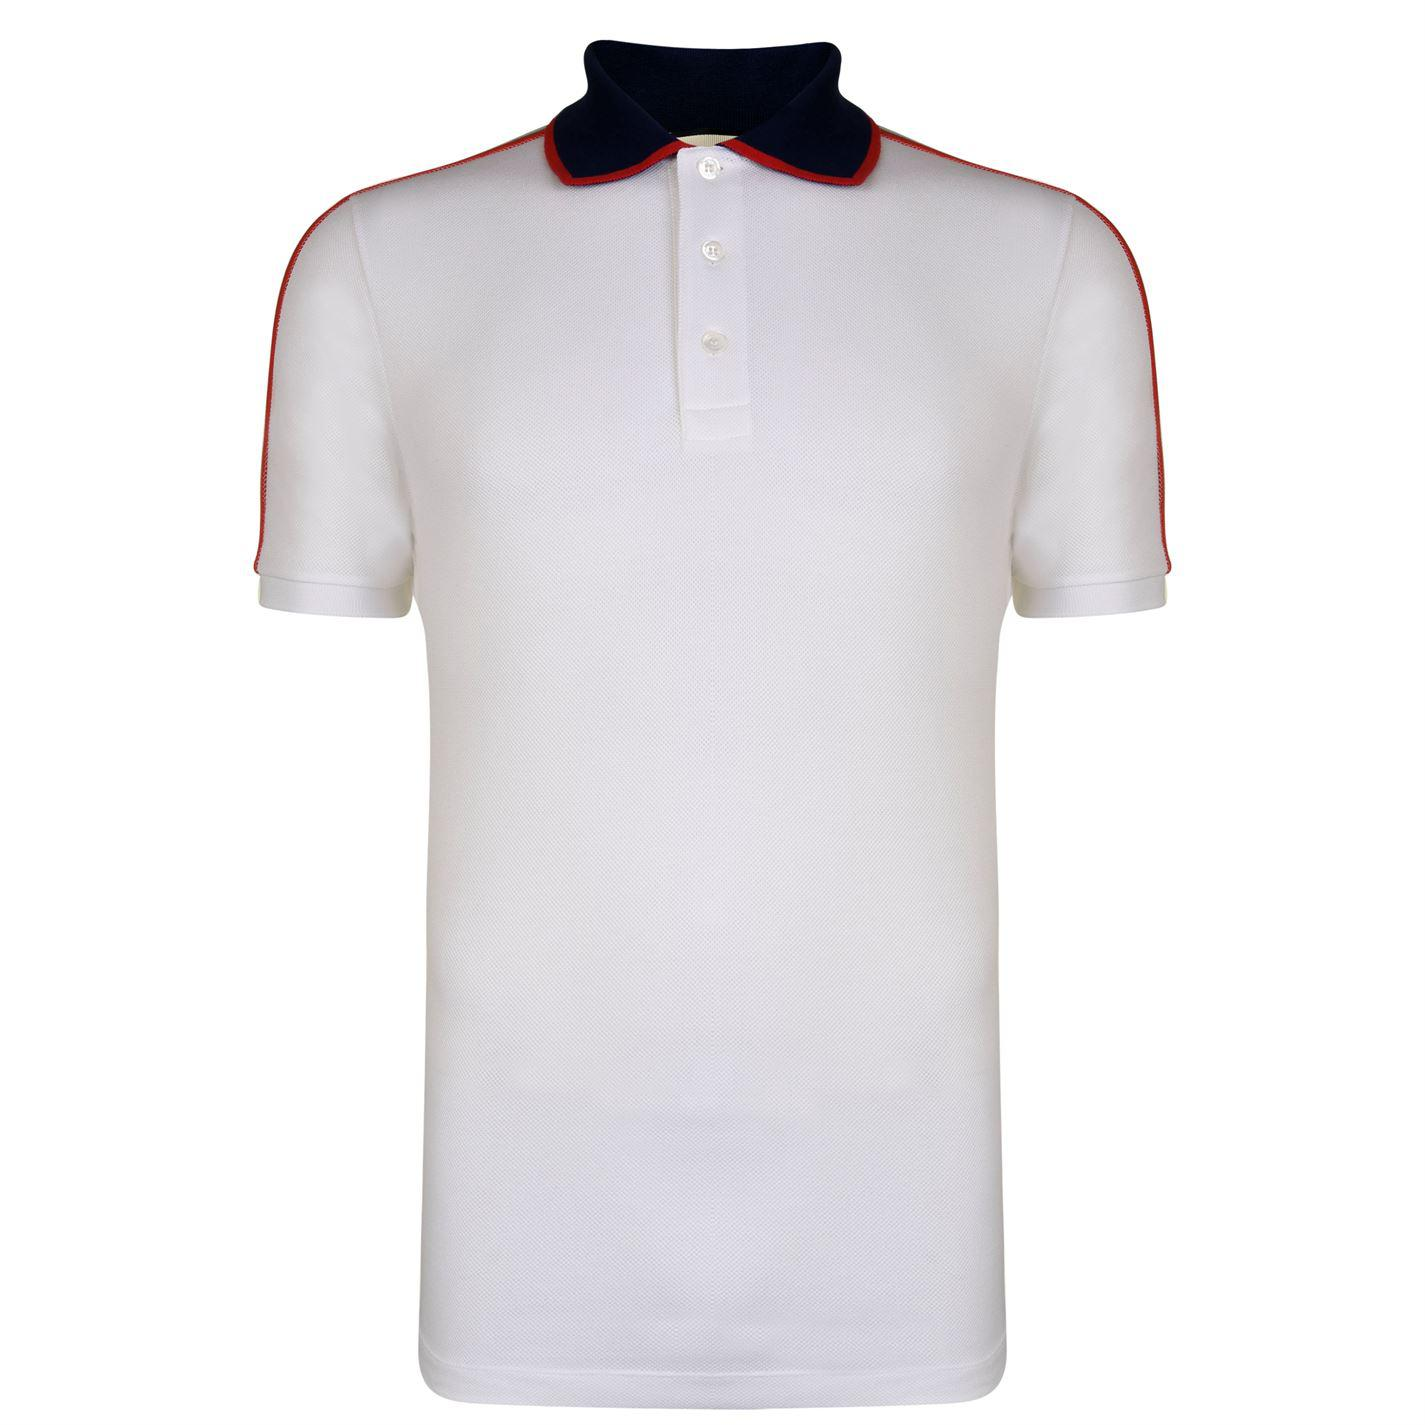 3c23f46e2b6 Gucci Ribbon Polo Shirt in White for Men - Lyst